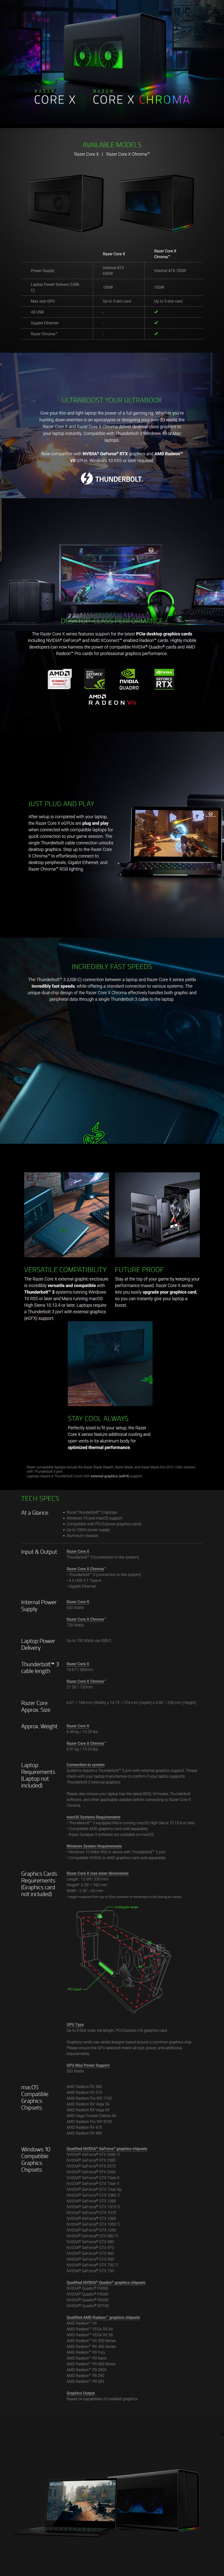 Razer Core X Chroma Thunderbolt™ 3 External Graphics Card Enclosure - Desktop Overview 1